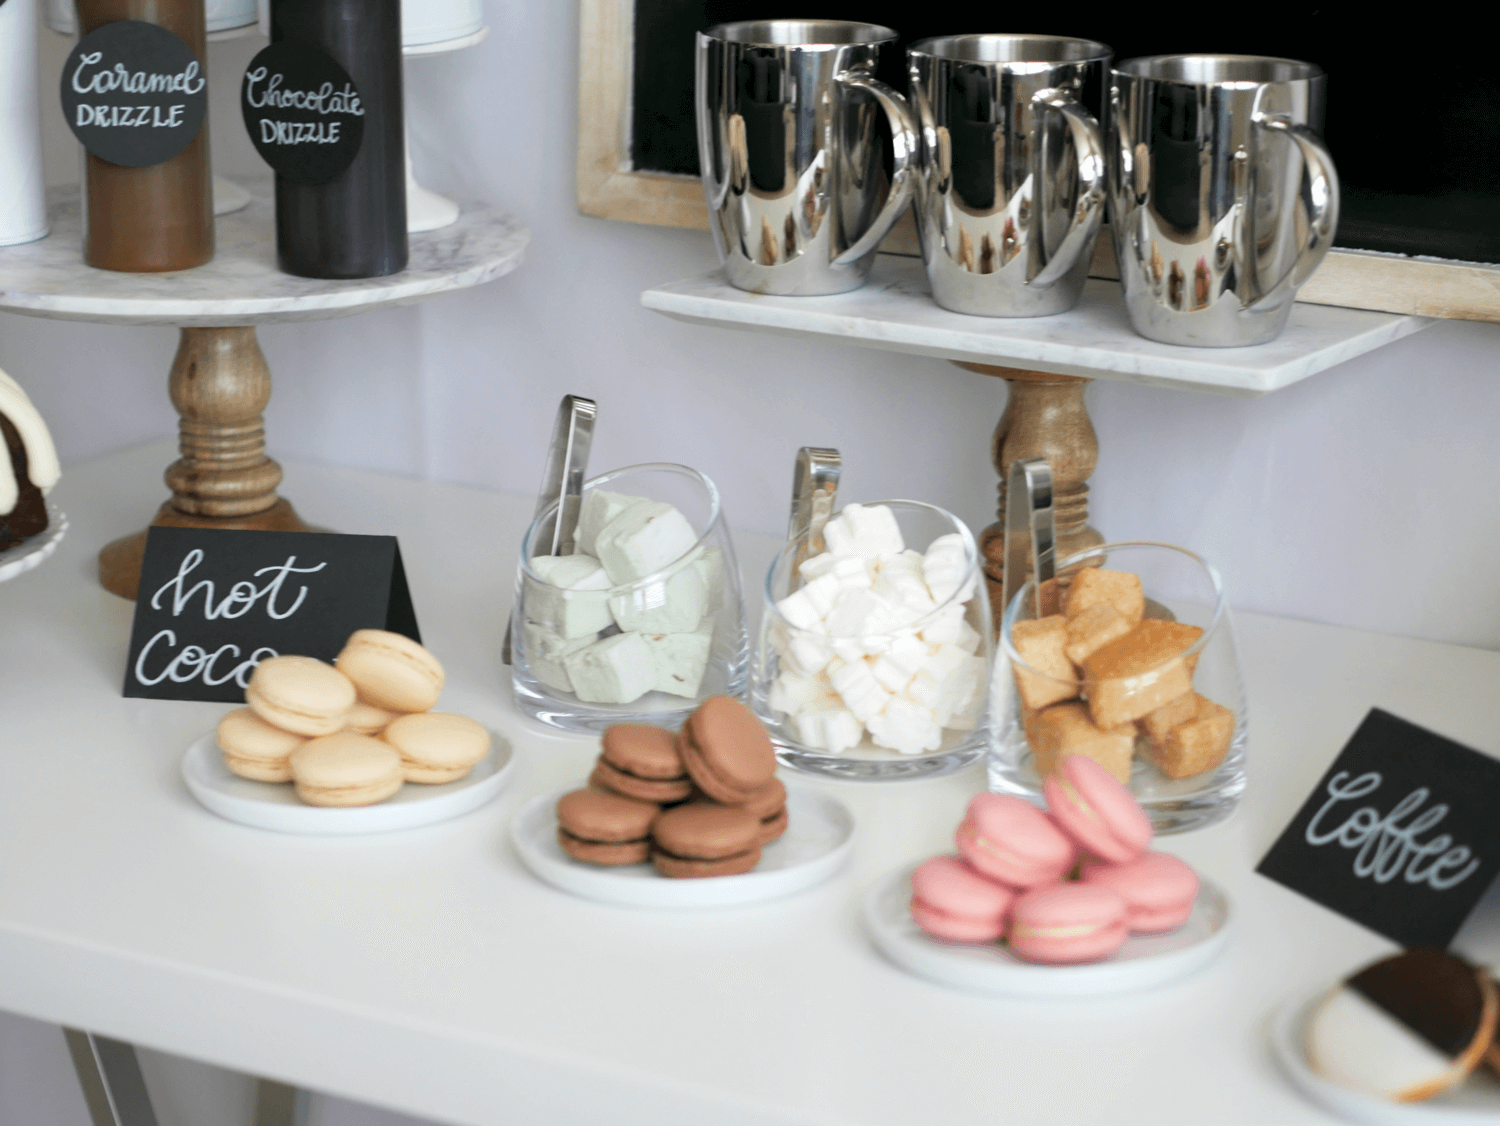 Yummy Macarons in Vanilla Chocolate and Raspberry are showcased in this DIY Hot Cocoa and Coffee Bar. Styled by party stylist Mint Event Design. #partyideas #partyinspiration #hotchocolate #hotcocoa #coffeebar #coffeestation #winterparty #winterwedding #macarons